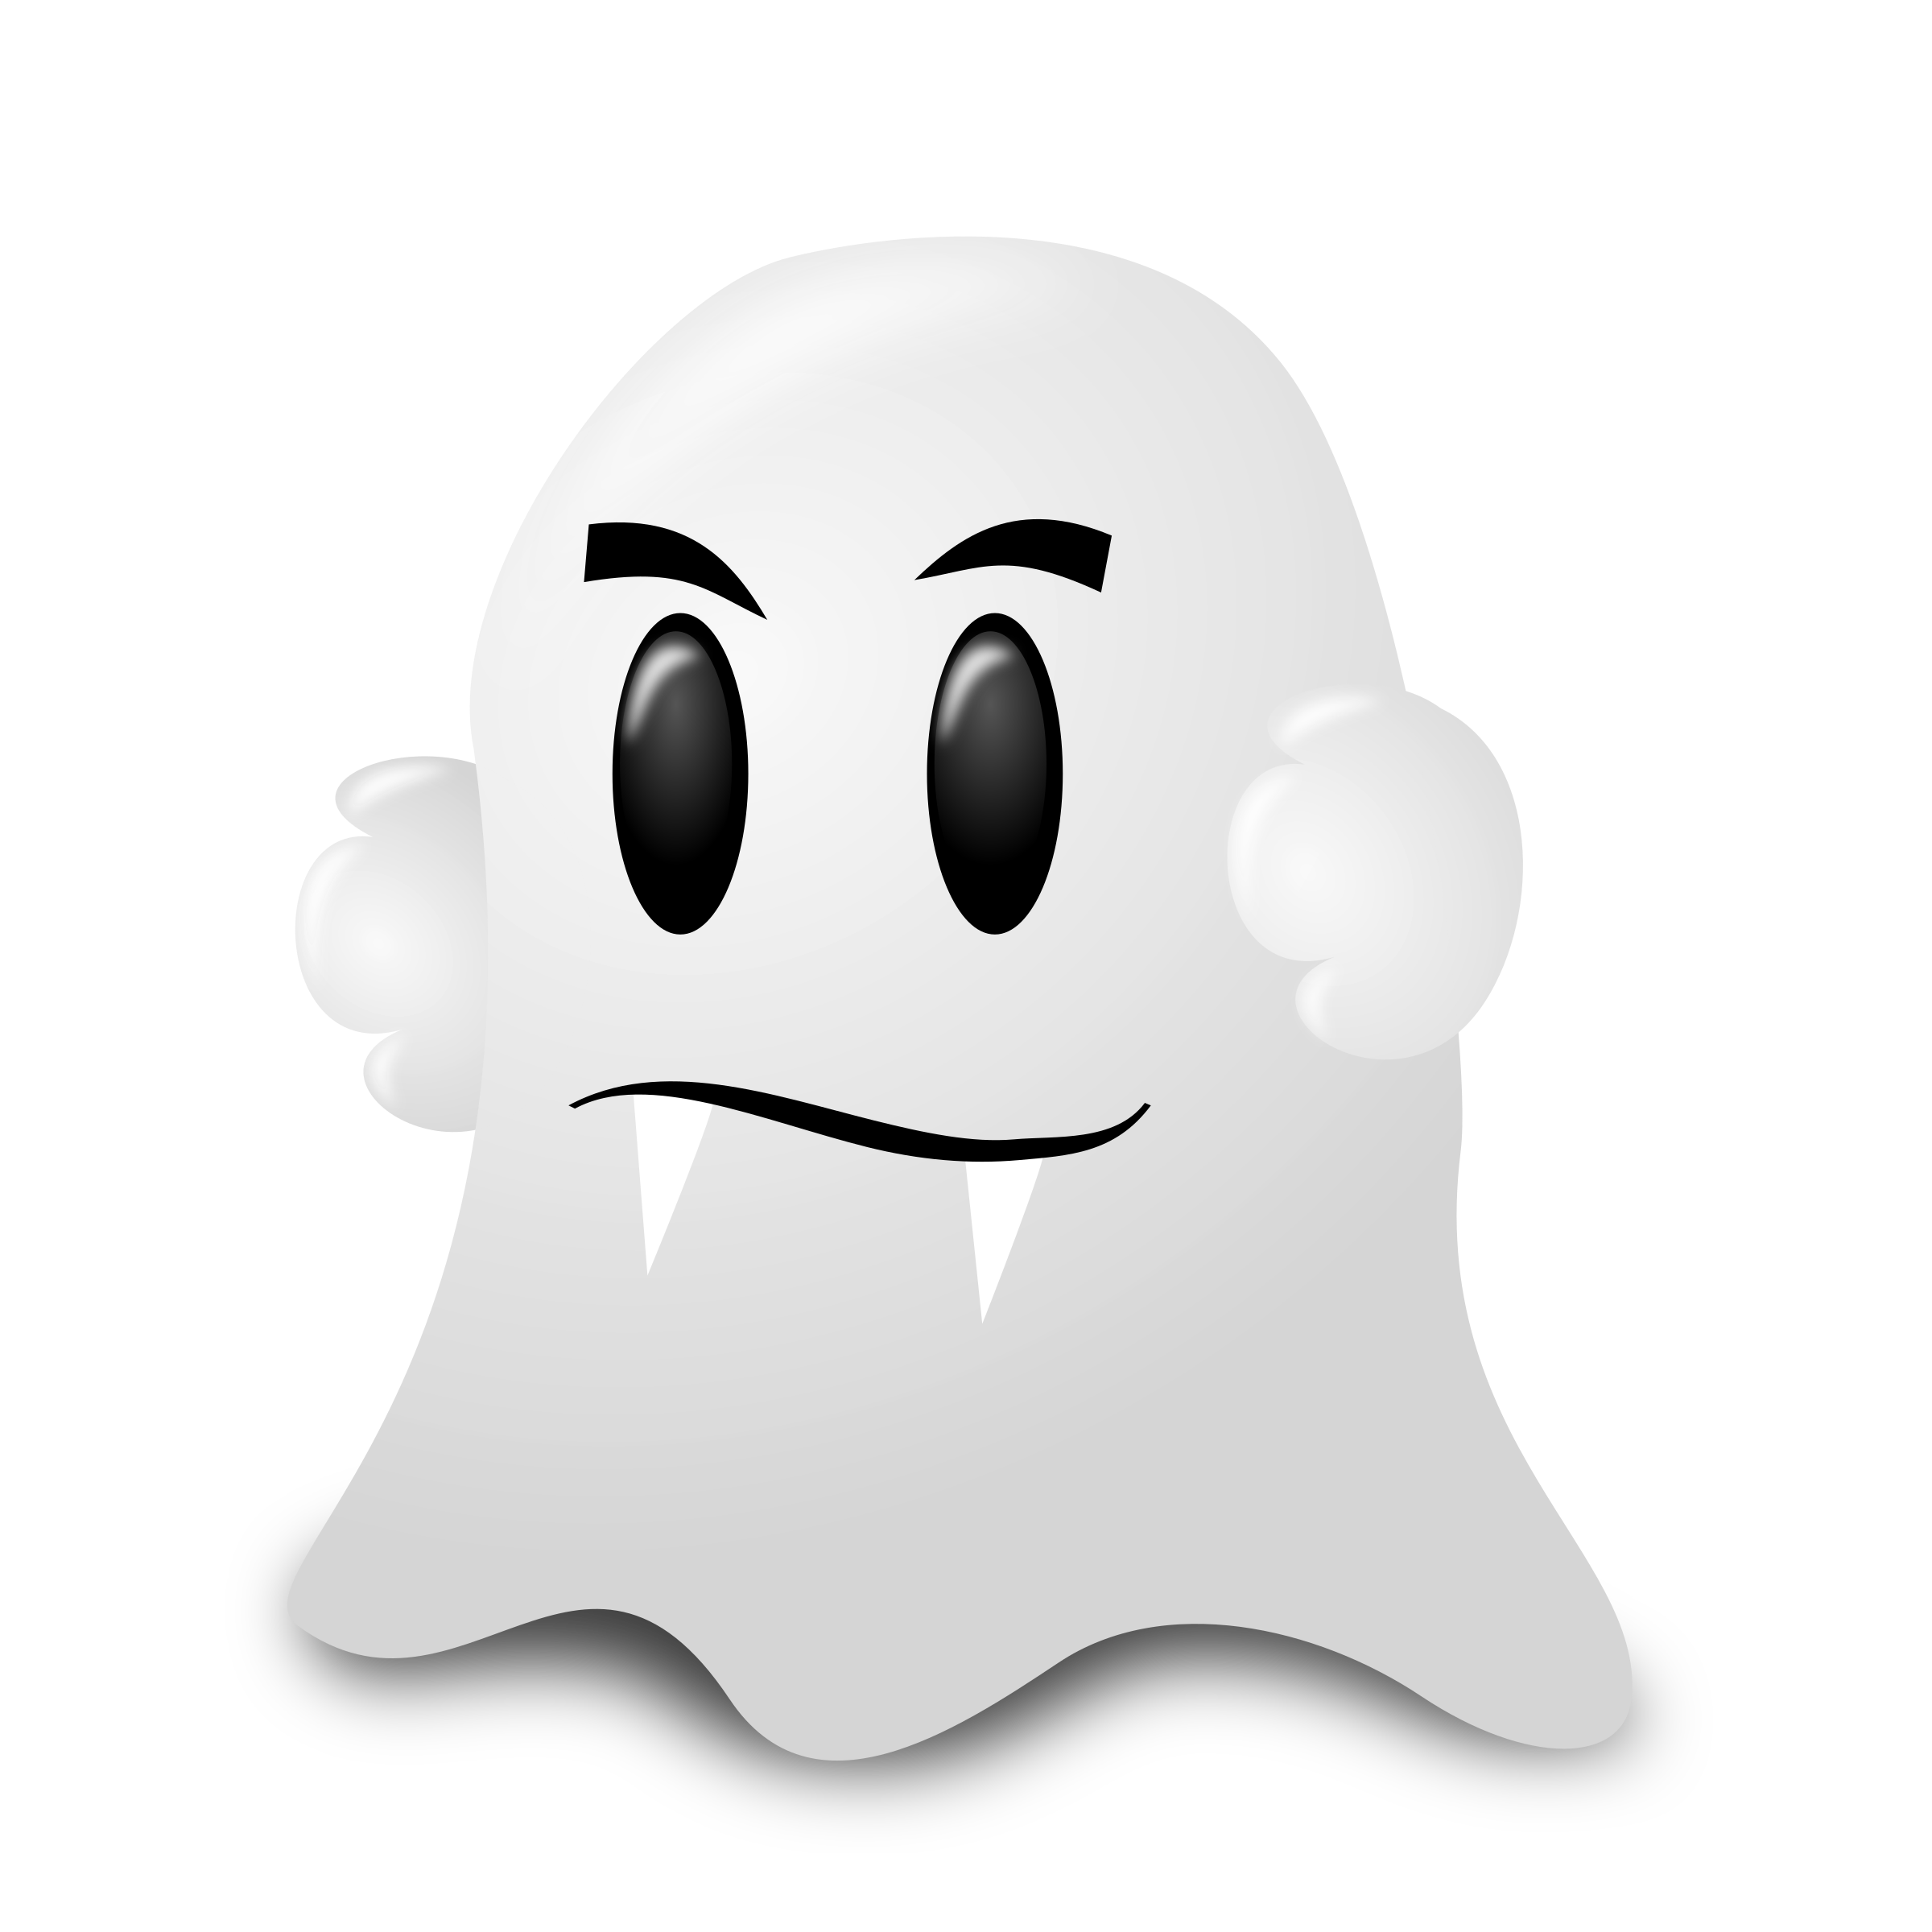 Clipart halloween icon. Big image png